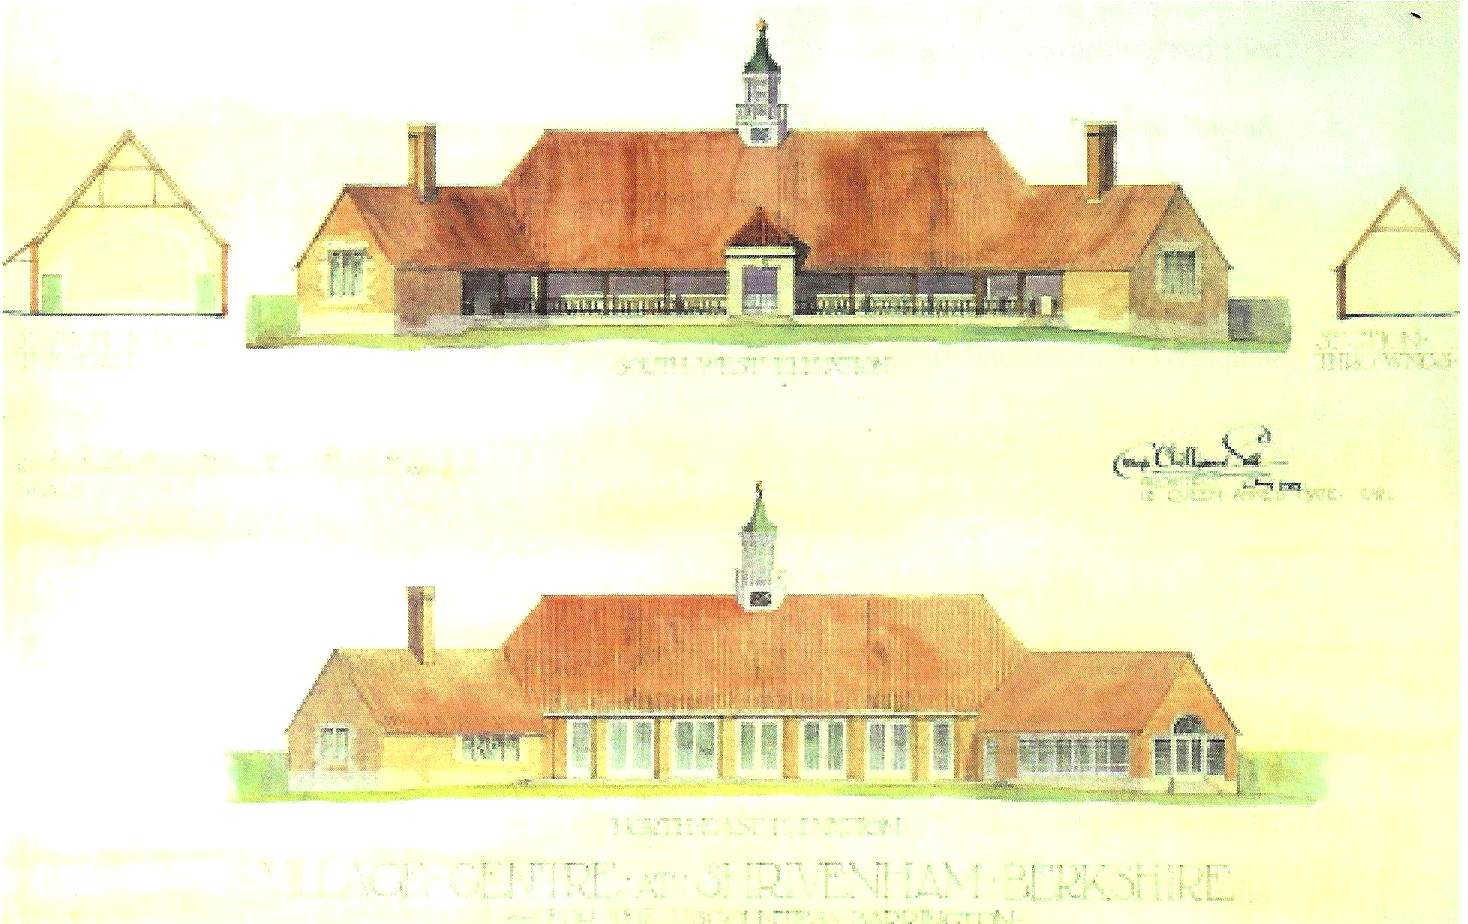 1919 Design for Village Hall by Clough Williams-Ellis.